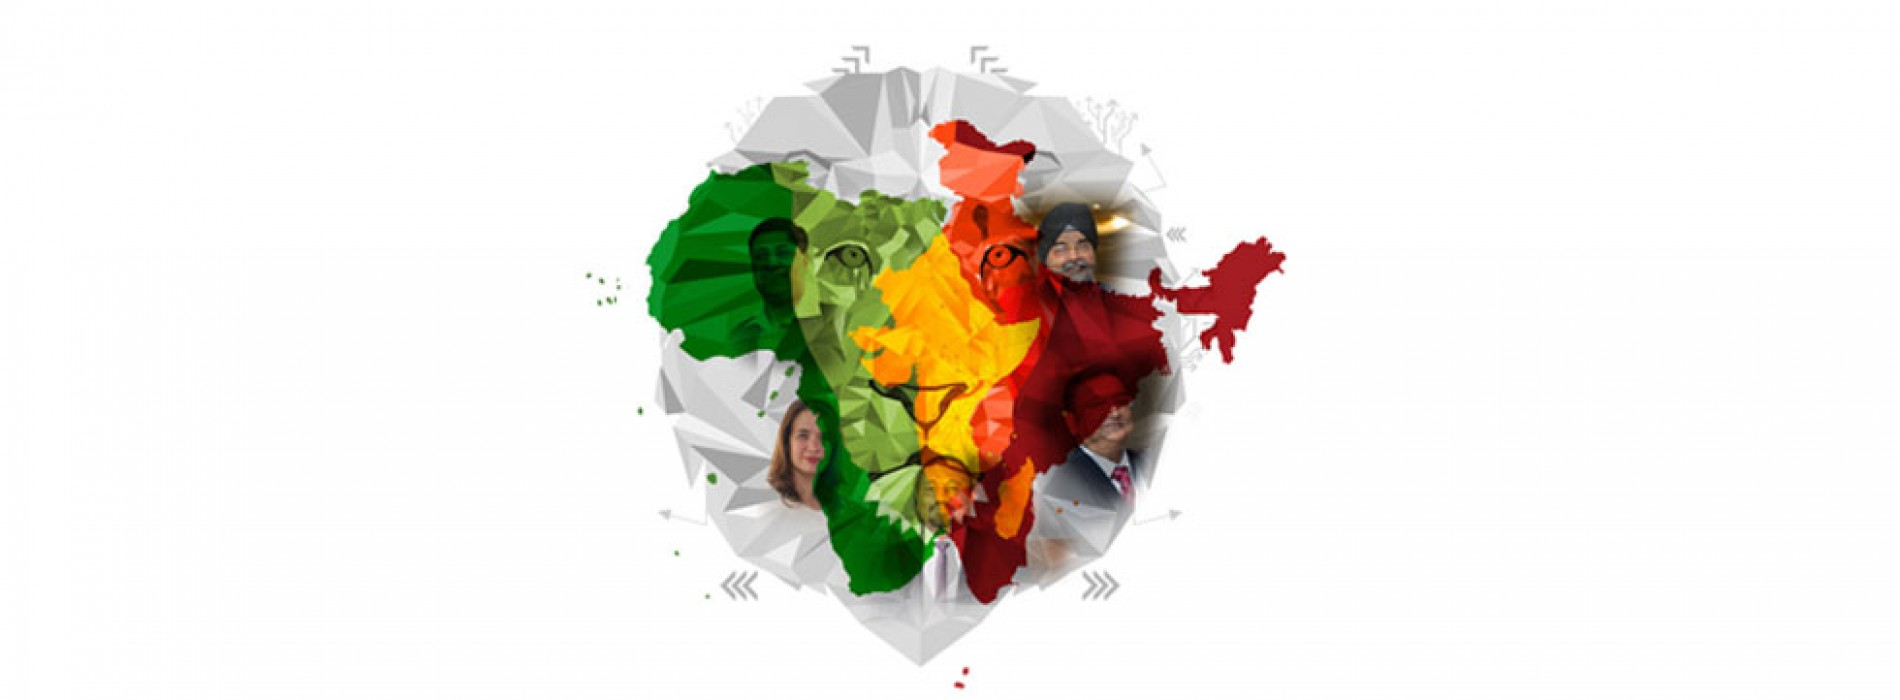 Missing Link: Afro-India tourism ties